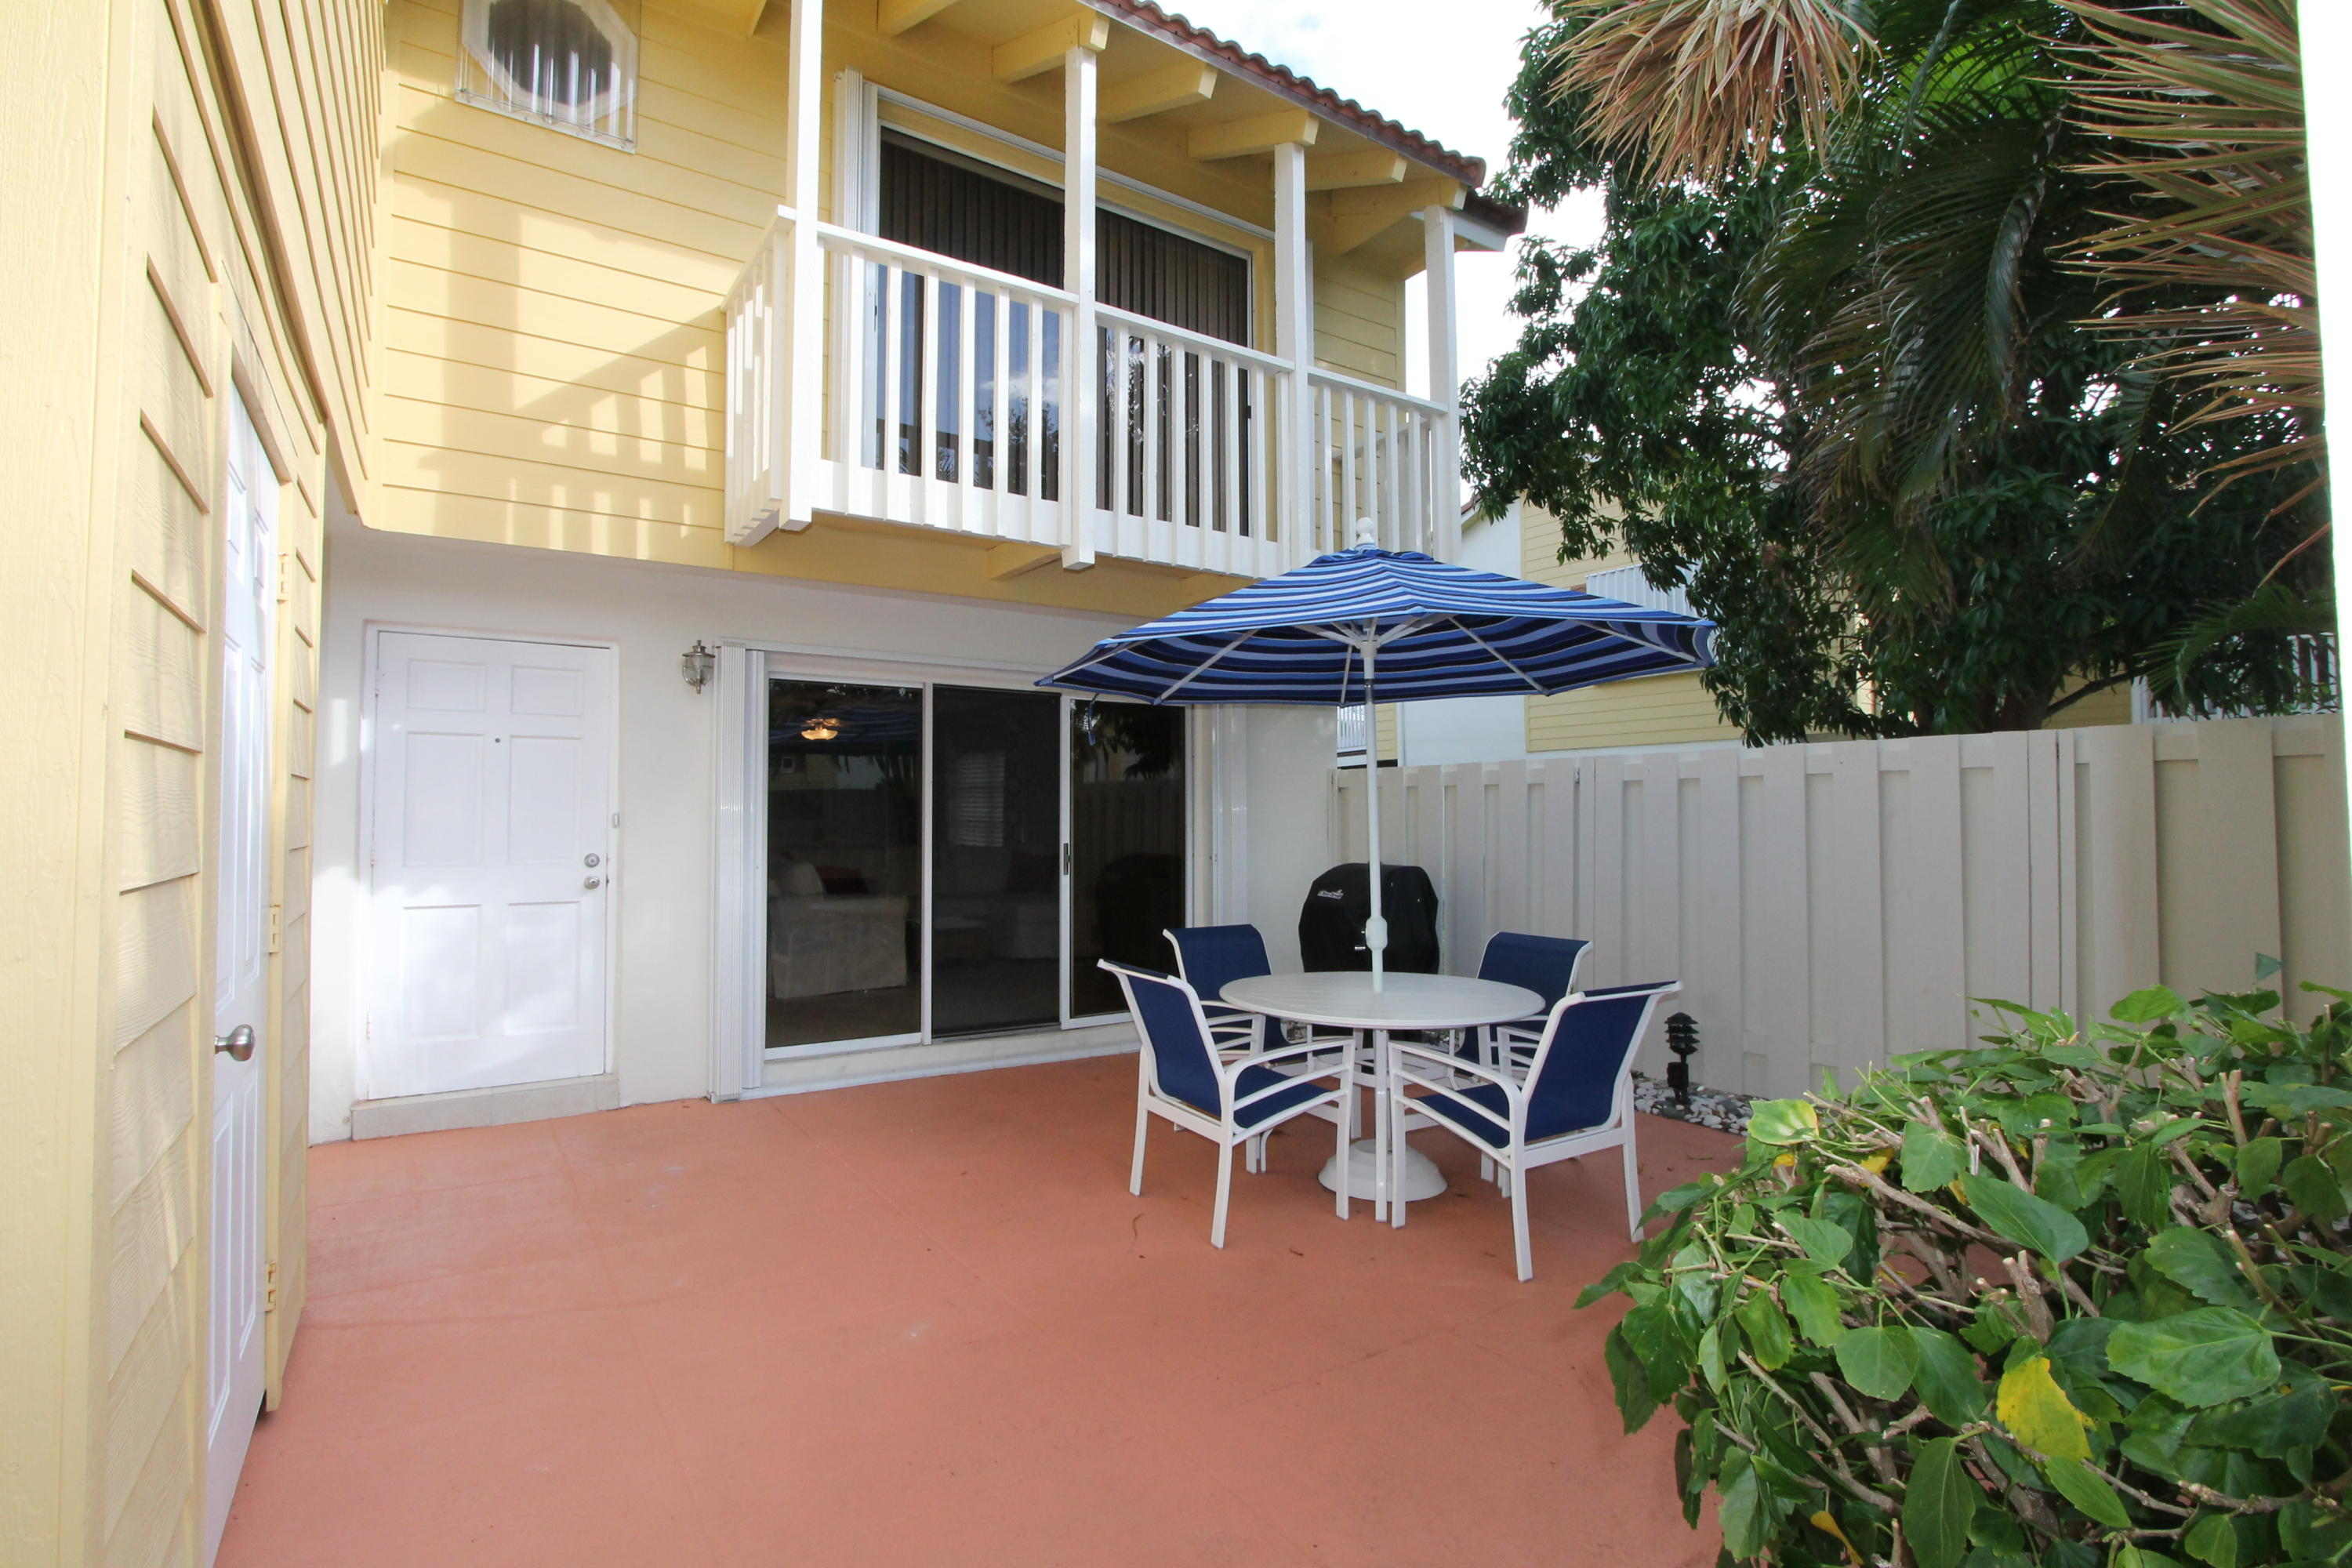 143 Seabreeze Circle - Jupiter, Florida